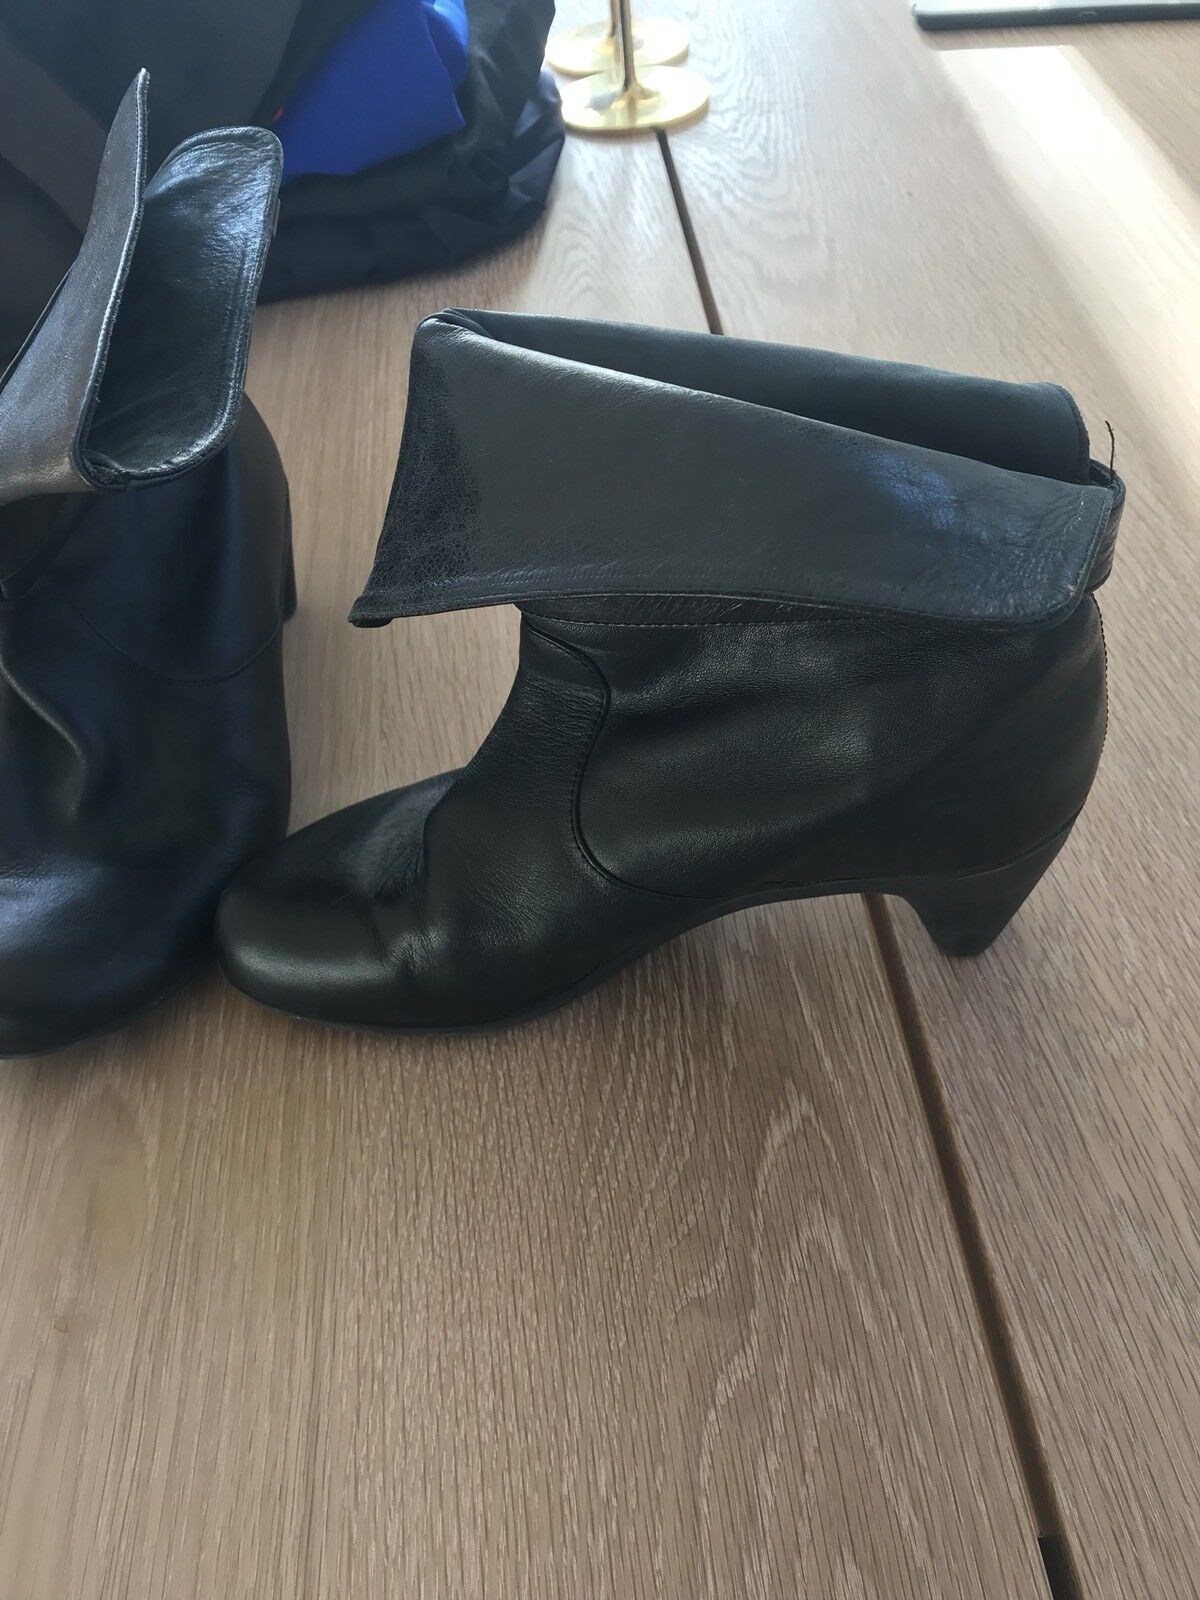 Camper Ankle Boots Black Leather Size 38 Euc Round Toe